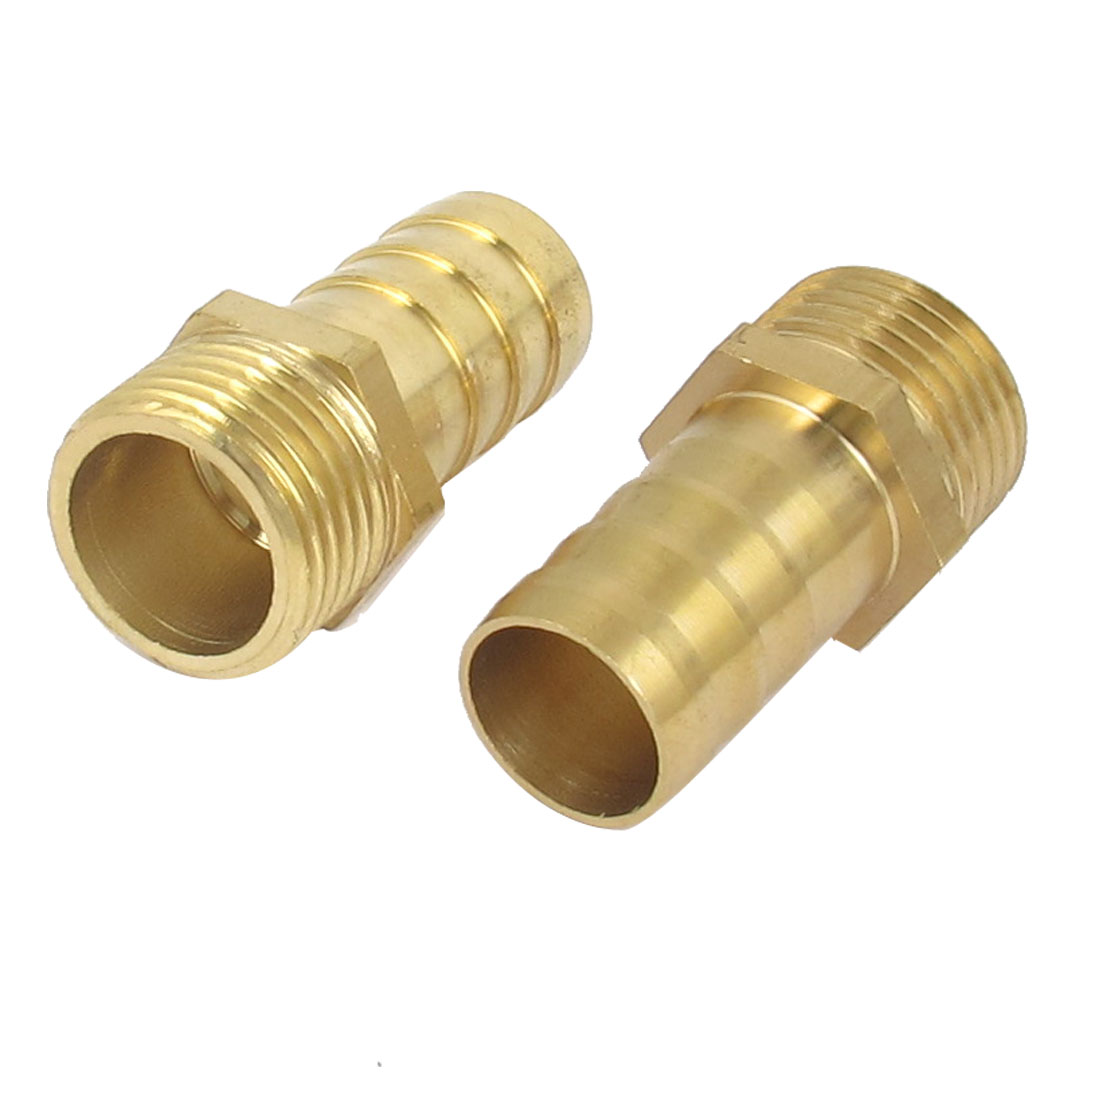 Brass 1/2BSP Male Thread to 16mm Hose Barb Straight Fitting Adapter Coupler 2PCS